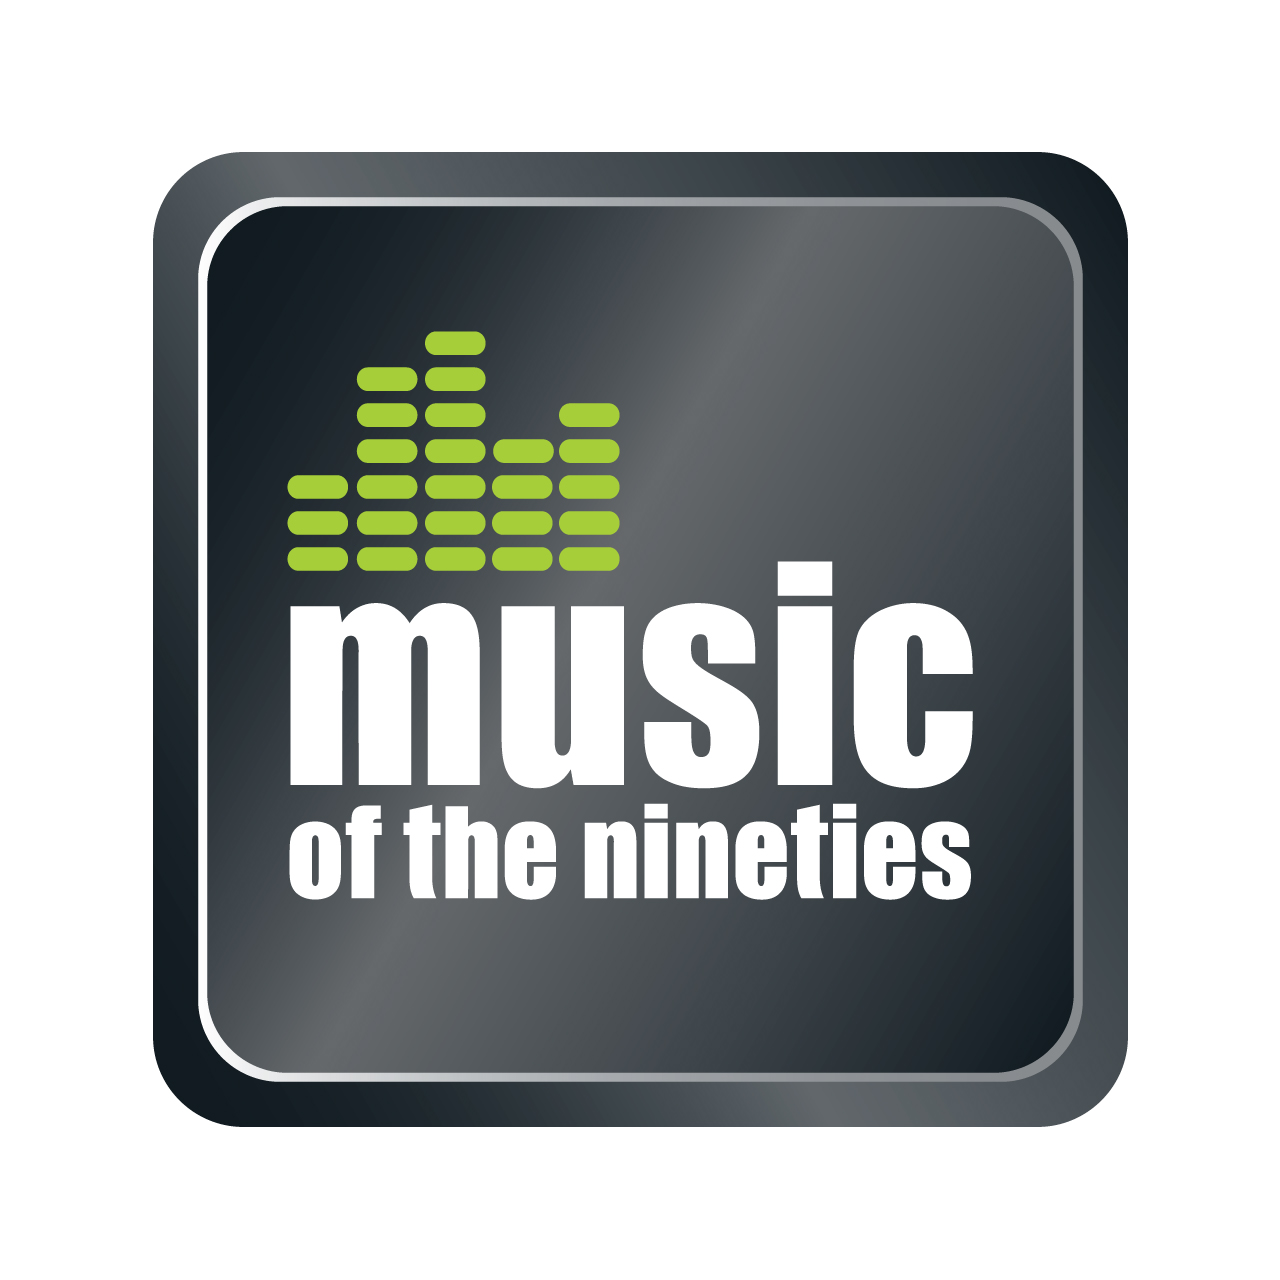 Logo Design by marikisoti - Entry No. 38 in the Logo Design Contest Music of the Nineties Logo.